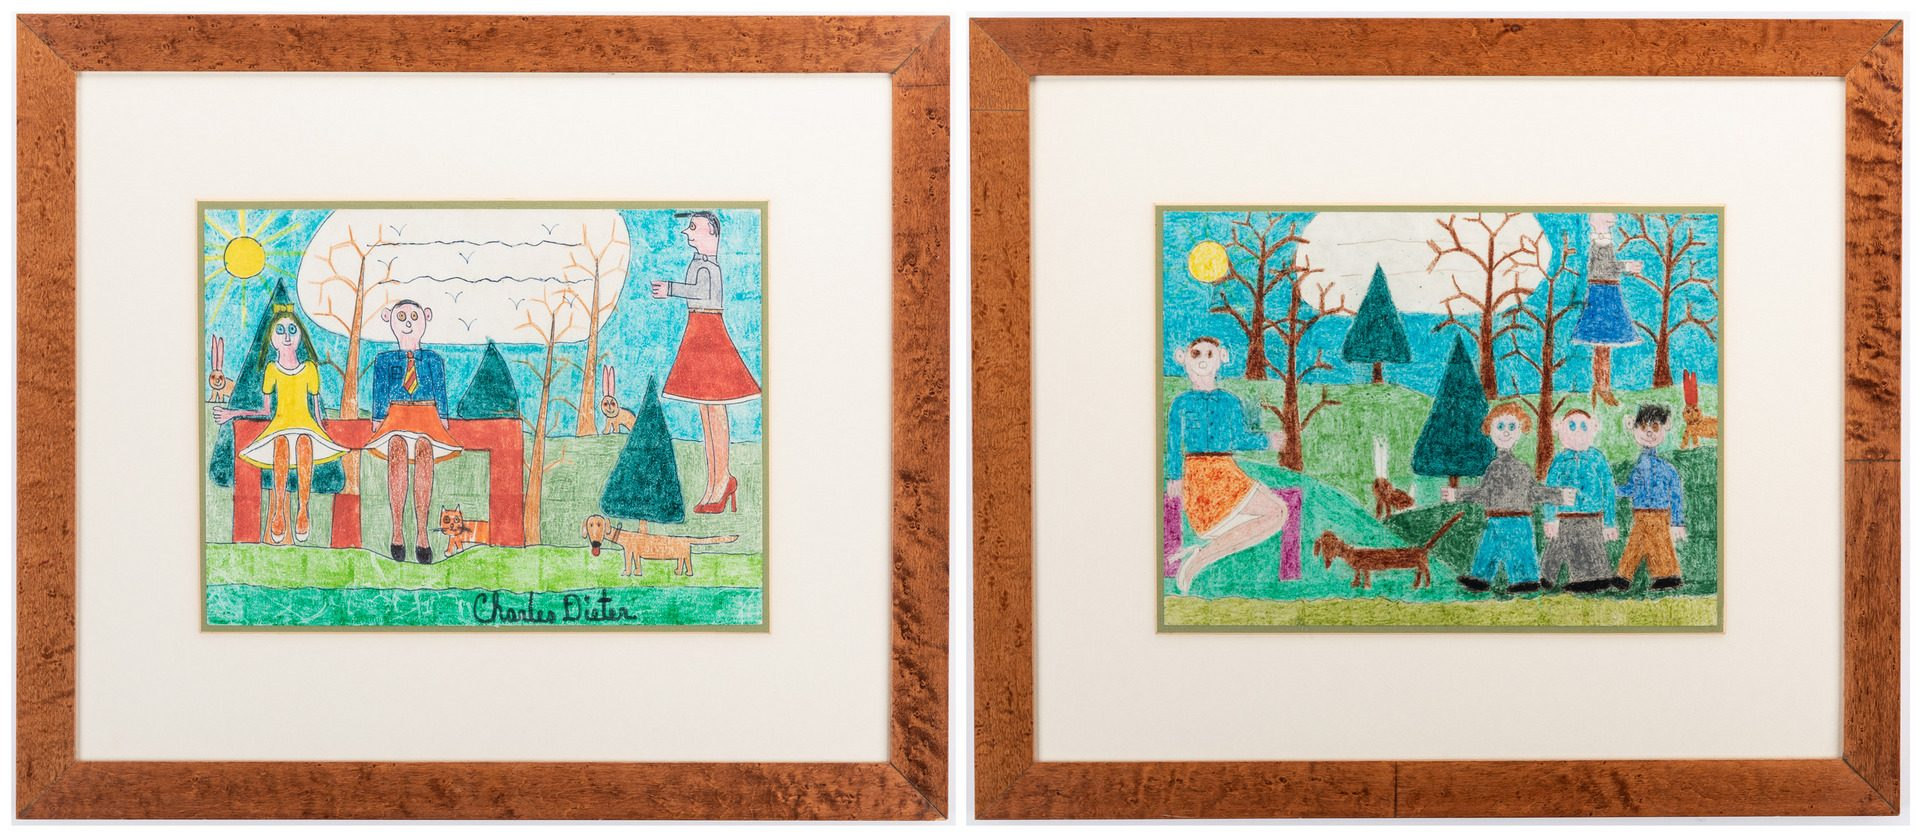 Lot 331: 2 Charles Dieter Folk Art Paintings on Paper